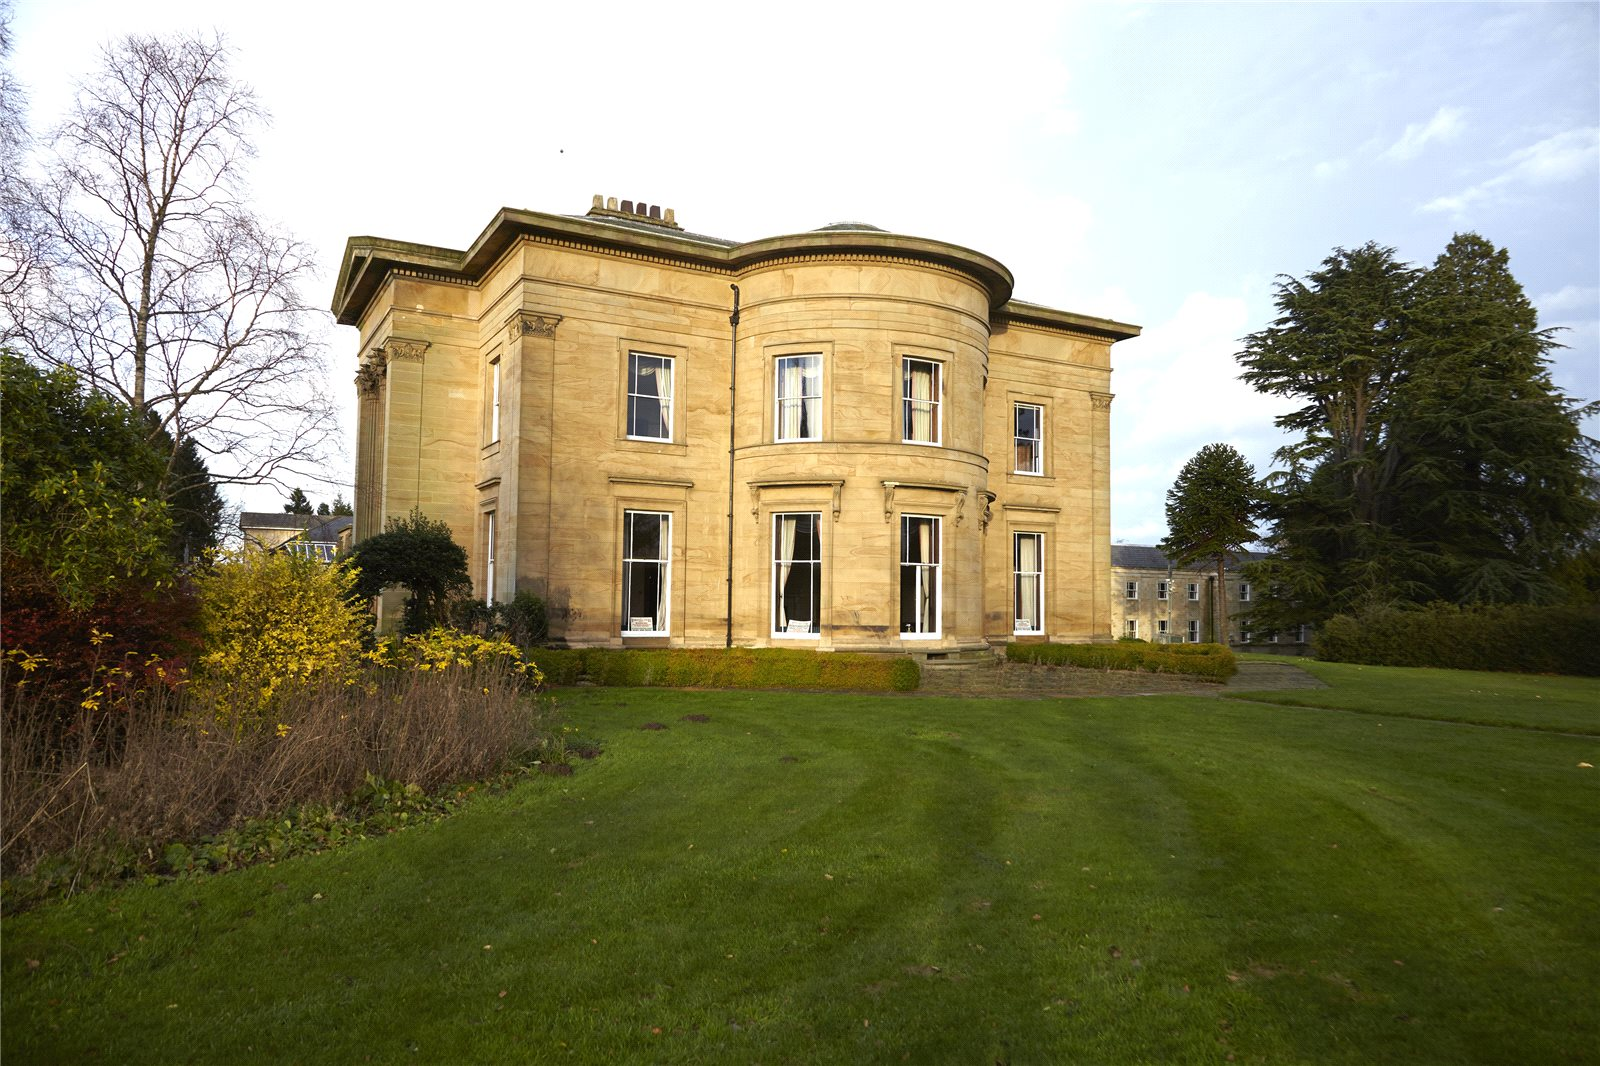 Additional photo for property listing at John Dobson Drive, Longhirst, Morpeth, Northumberland, NE61 Morpeth, Англия